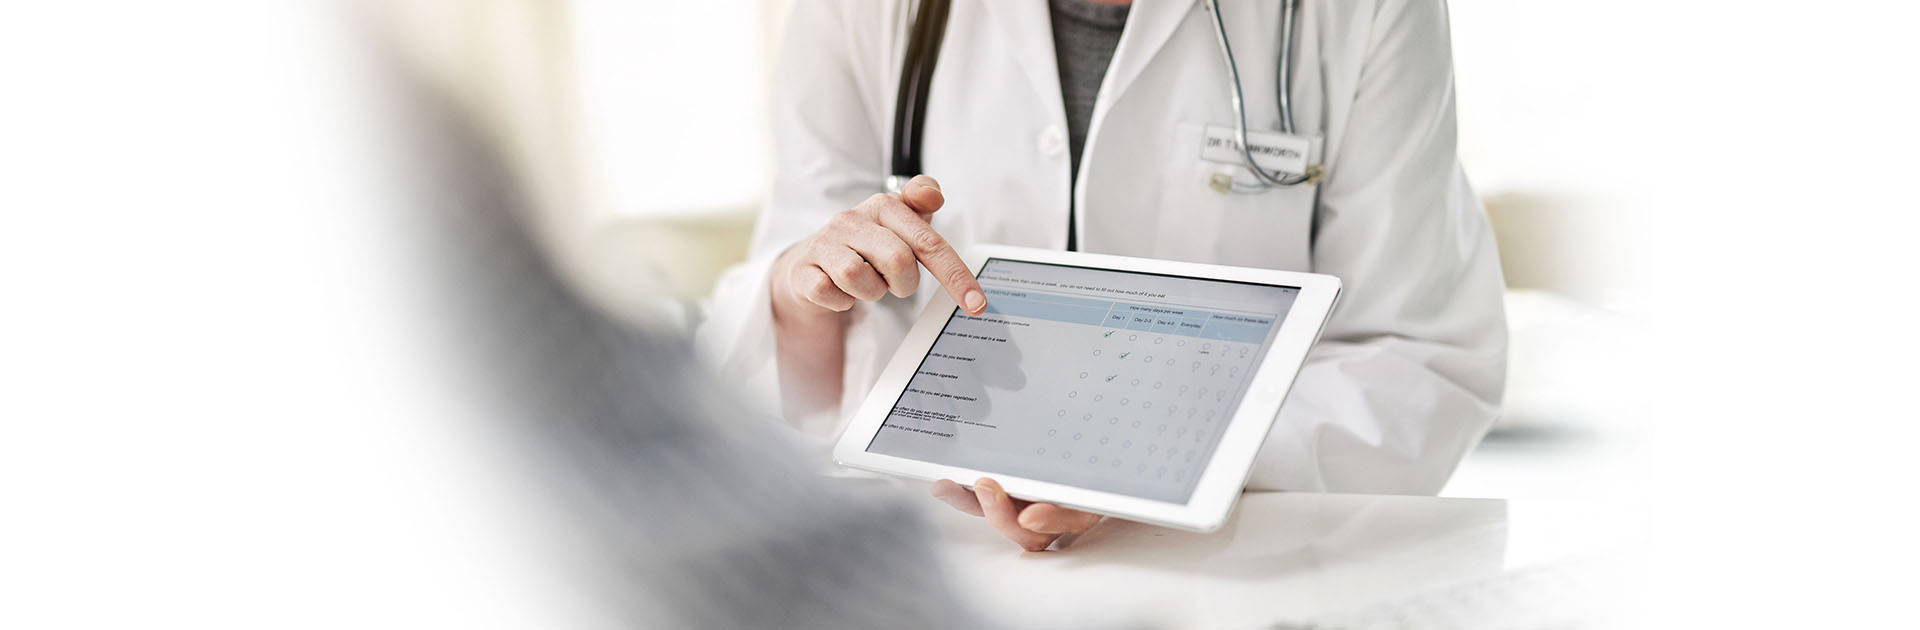 Woman in white coat holding a tablet pointing to the screen